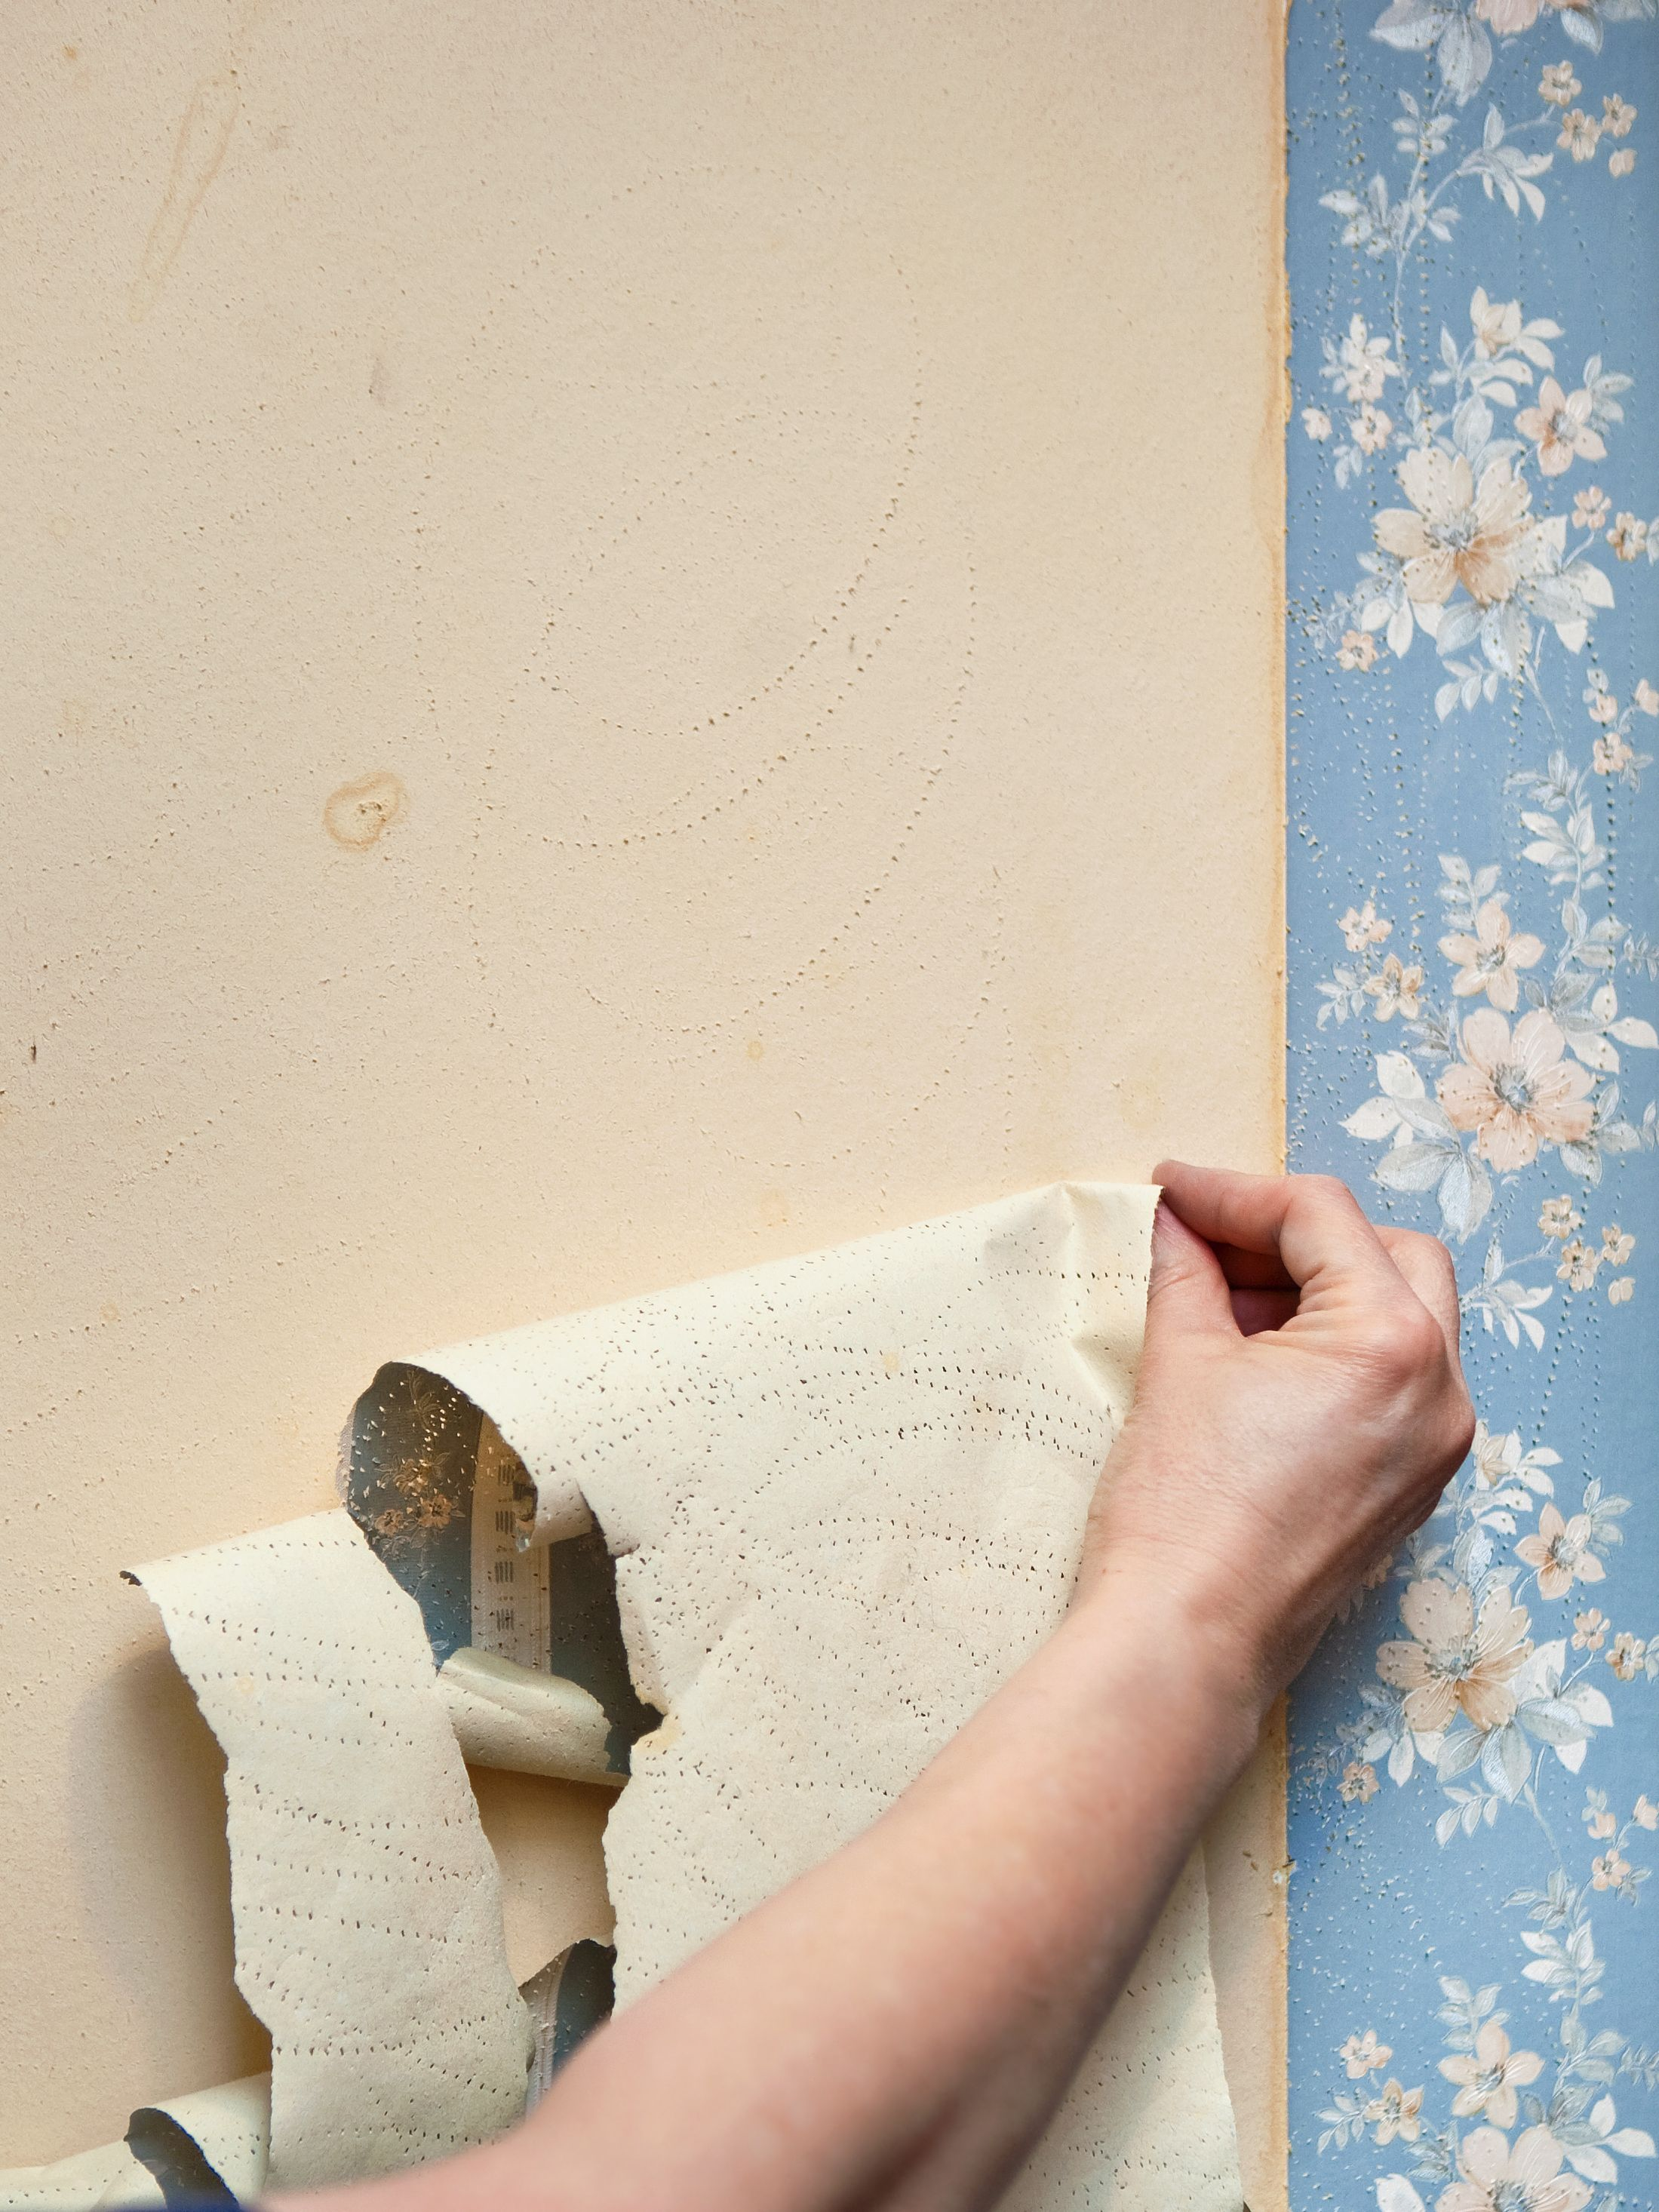 How To Remove Wallpaper In Just 7 Easy Steps